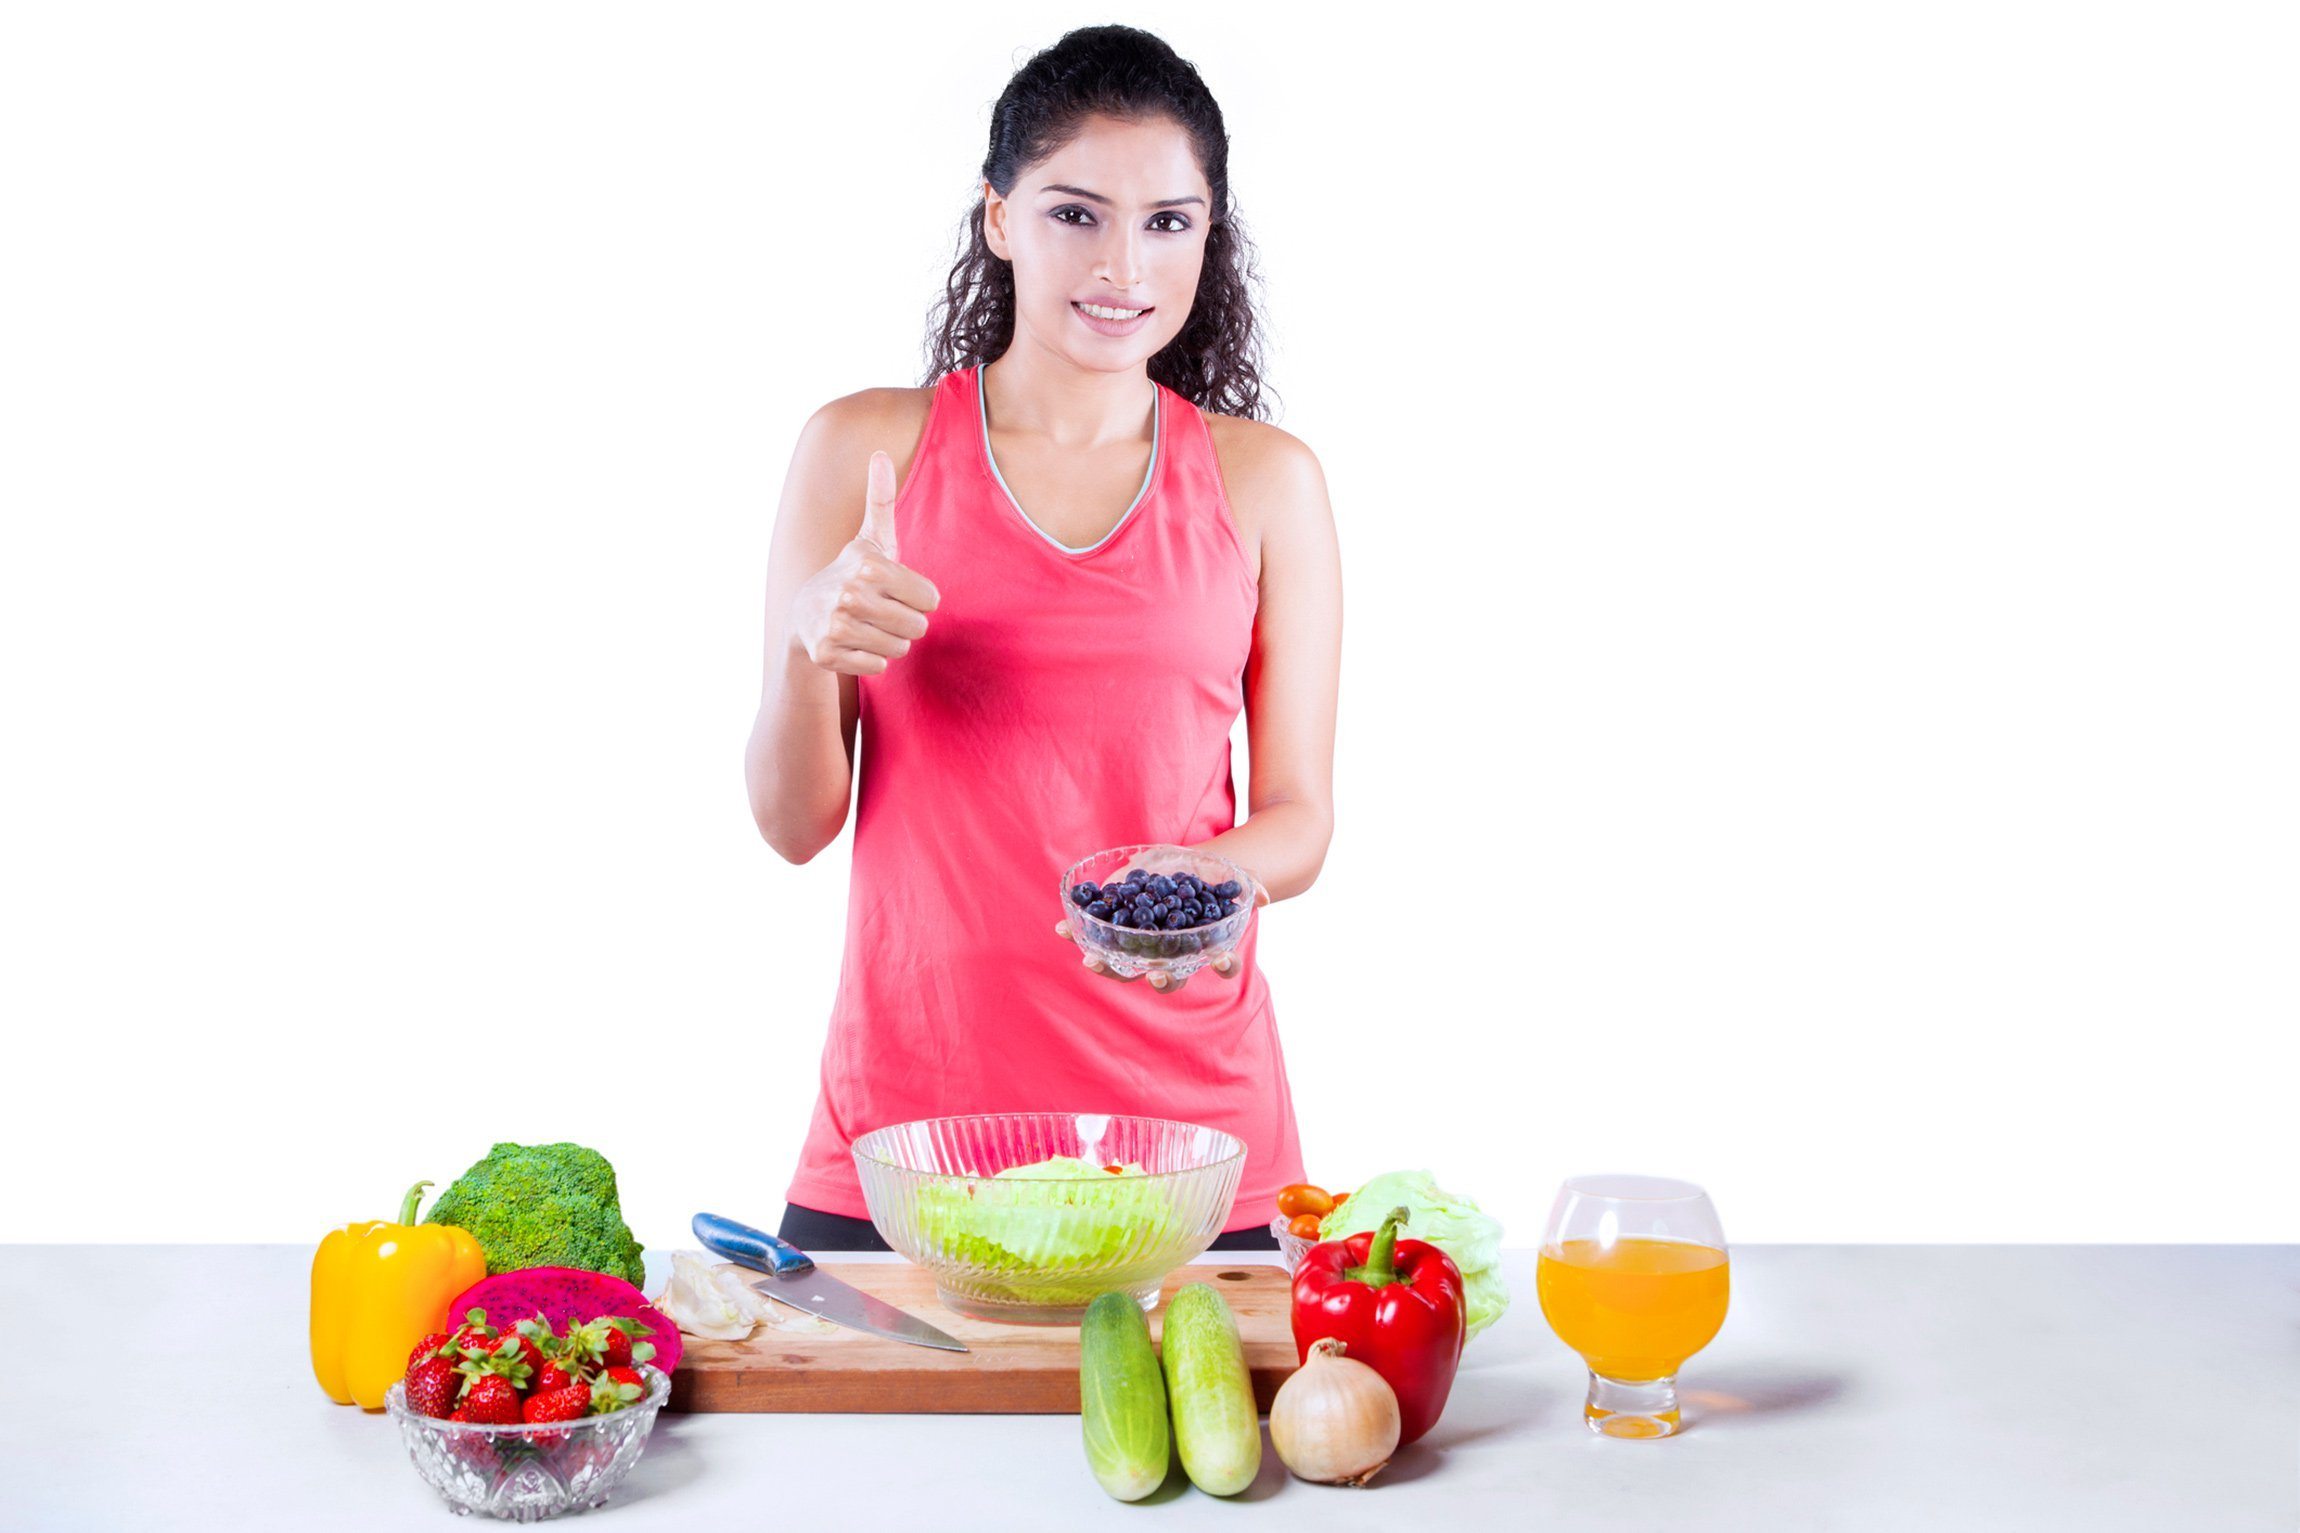 Woman preparing fruits and veggies